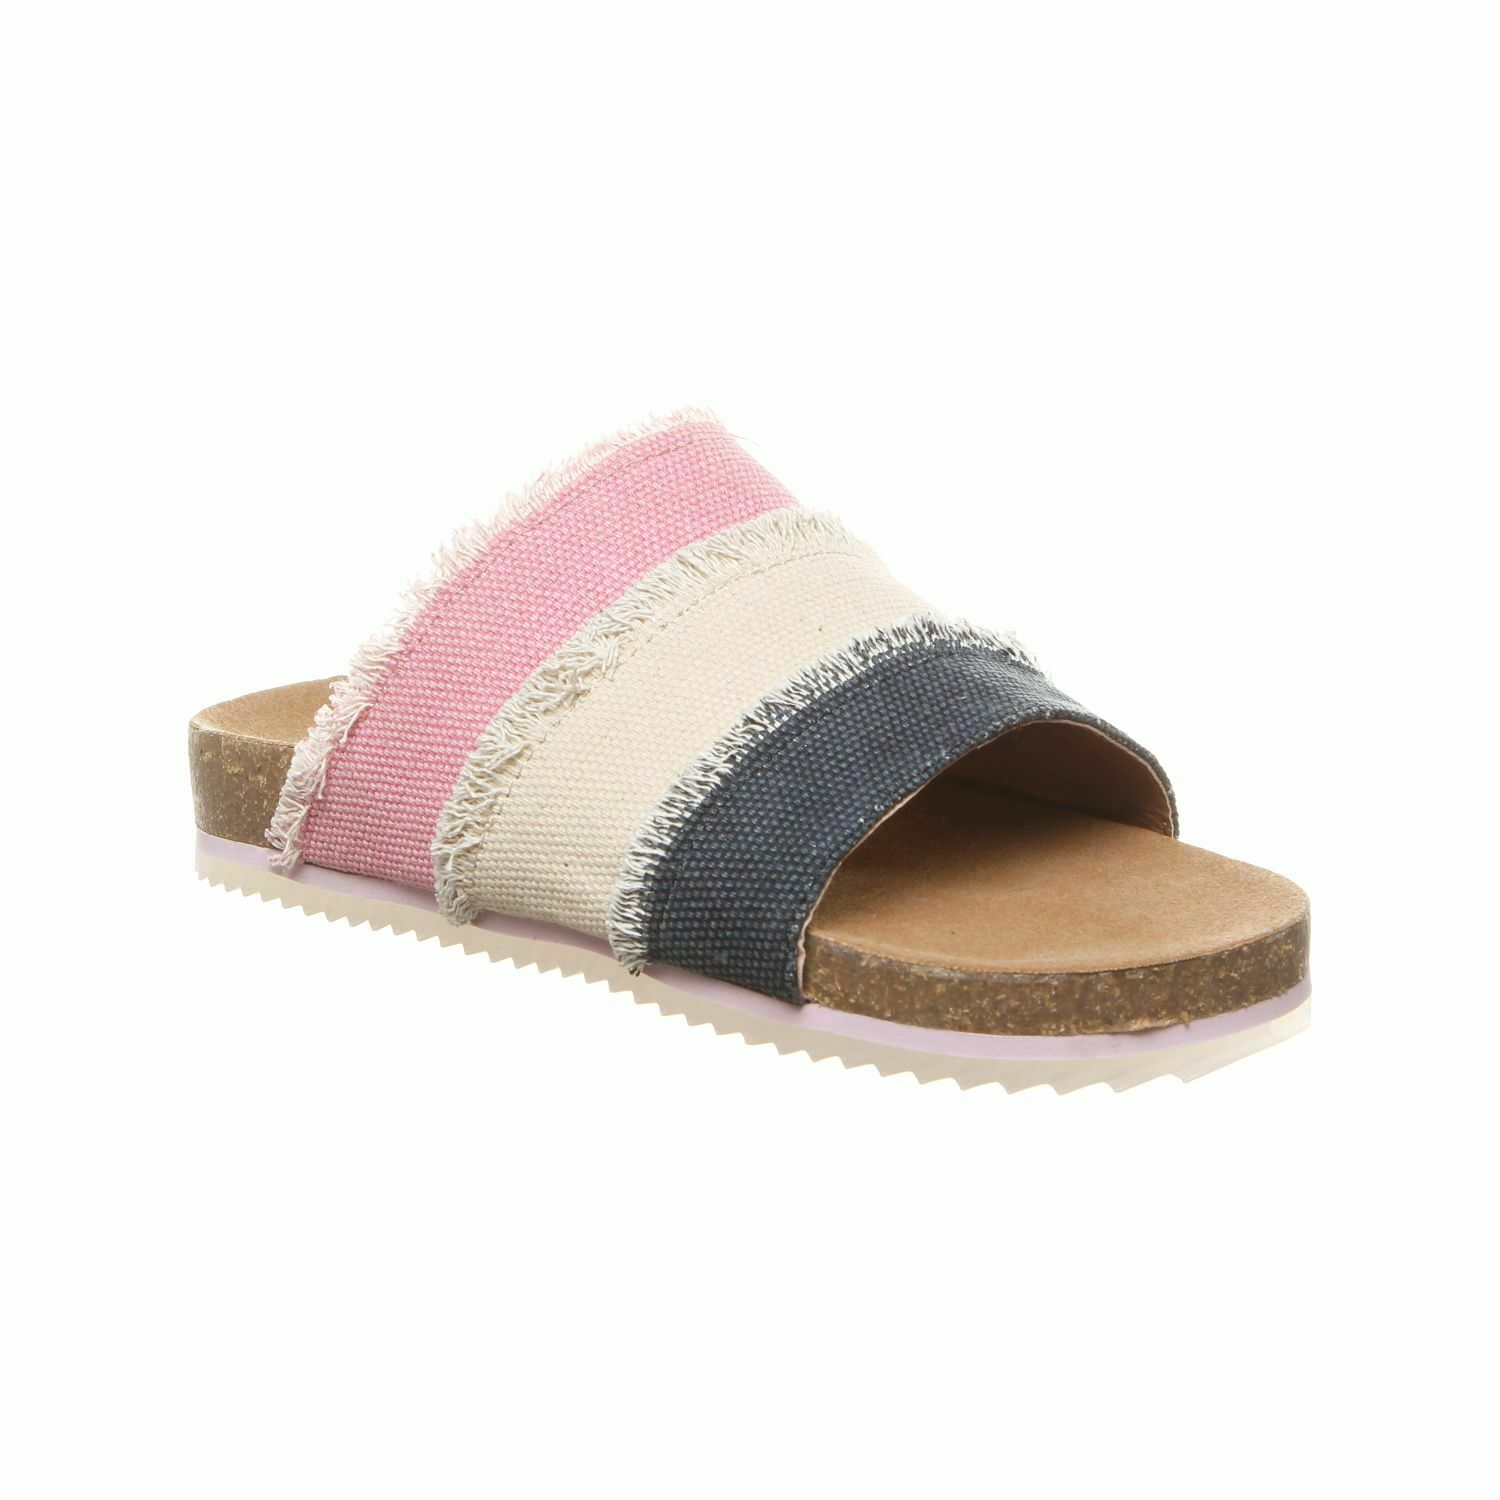 orsopaw Romi Girl's Comfort Slide Seal Neopolitan - 13 M Us Little Kid Medium Sautope classeiche da uomo